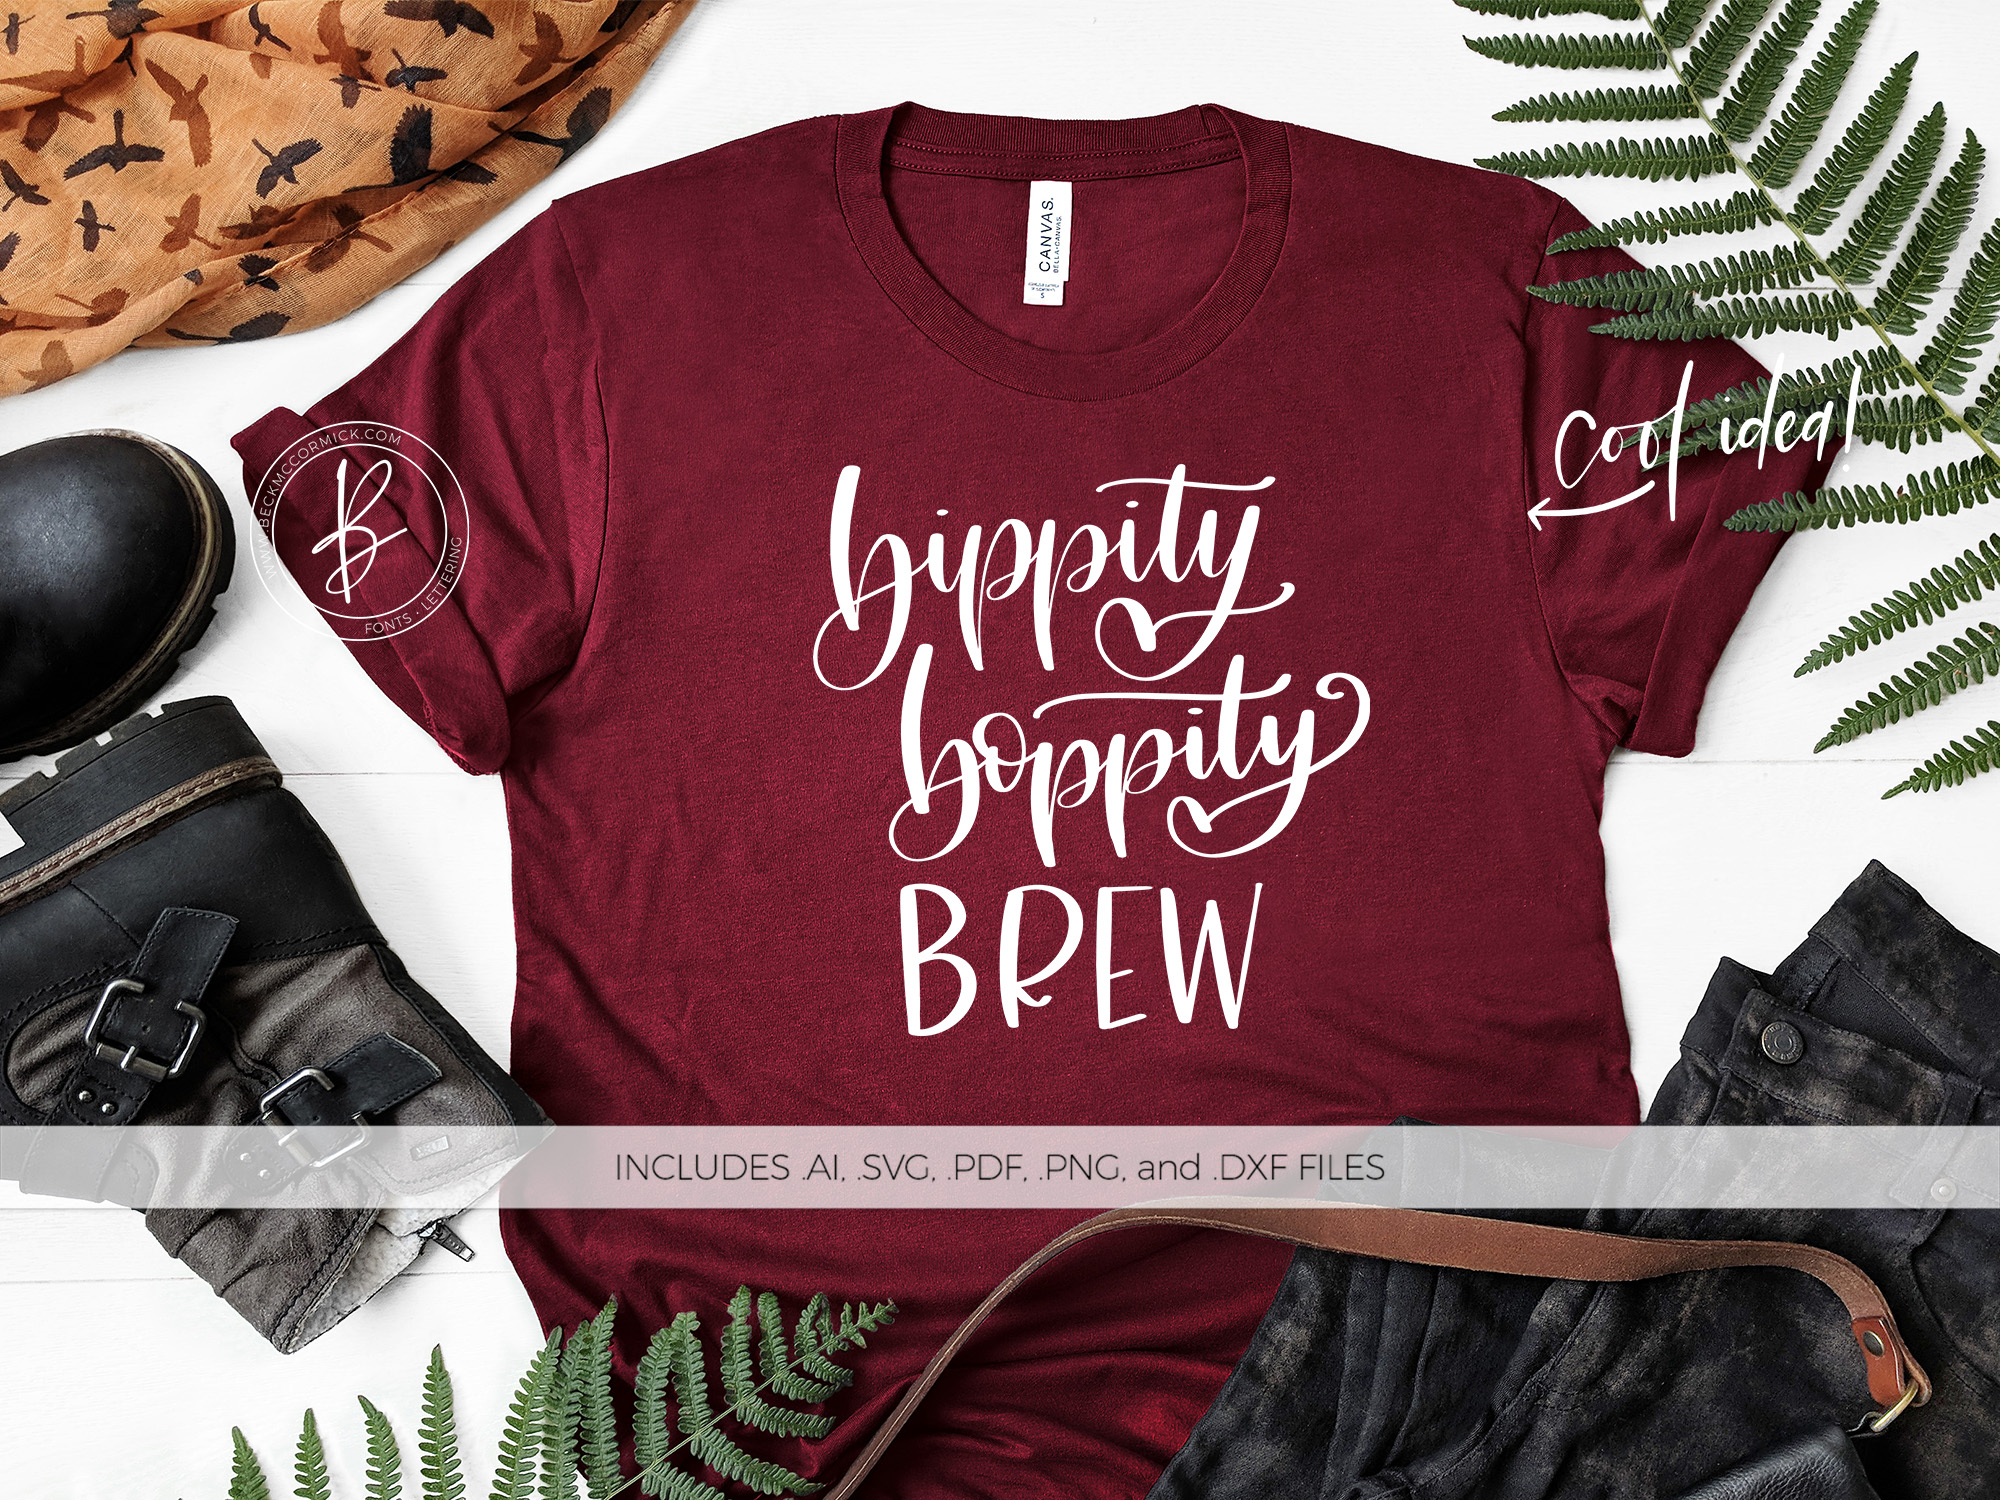 Download Free Bippity Boppity Brew Graphic By Beckmccormick Creative Fabrica for Cricut Explore, Silhouette and other cutting machines.